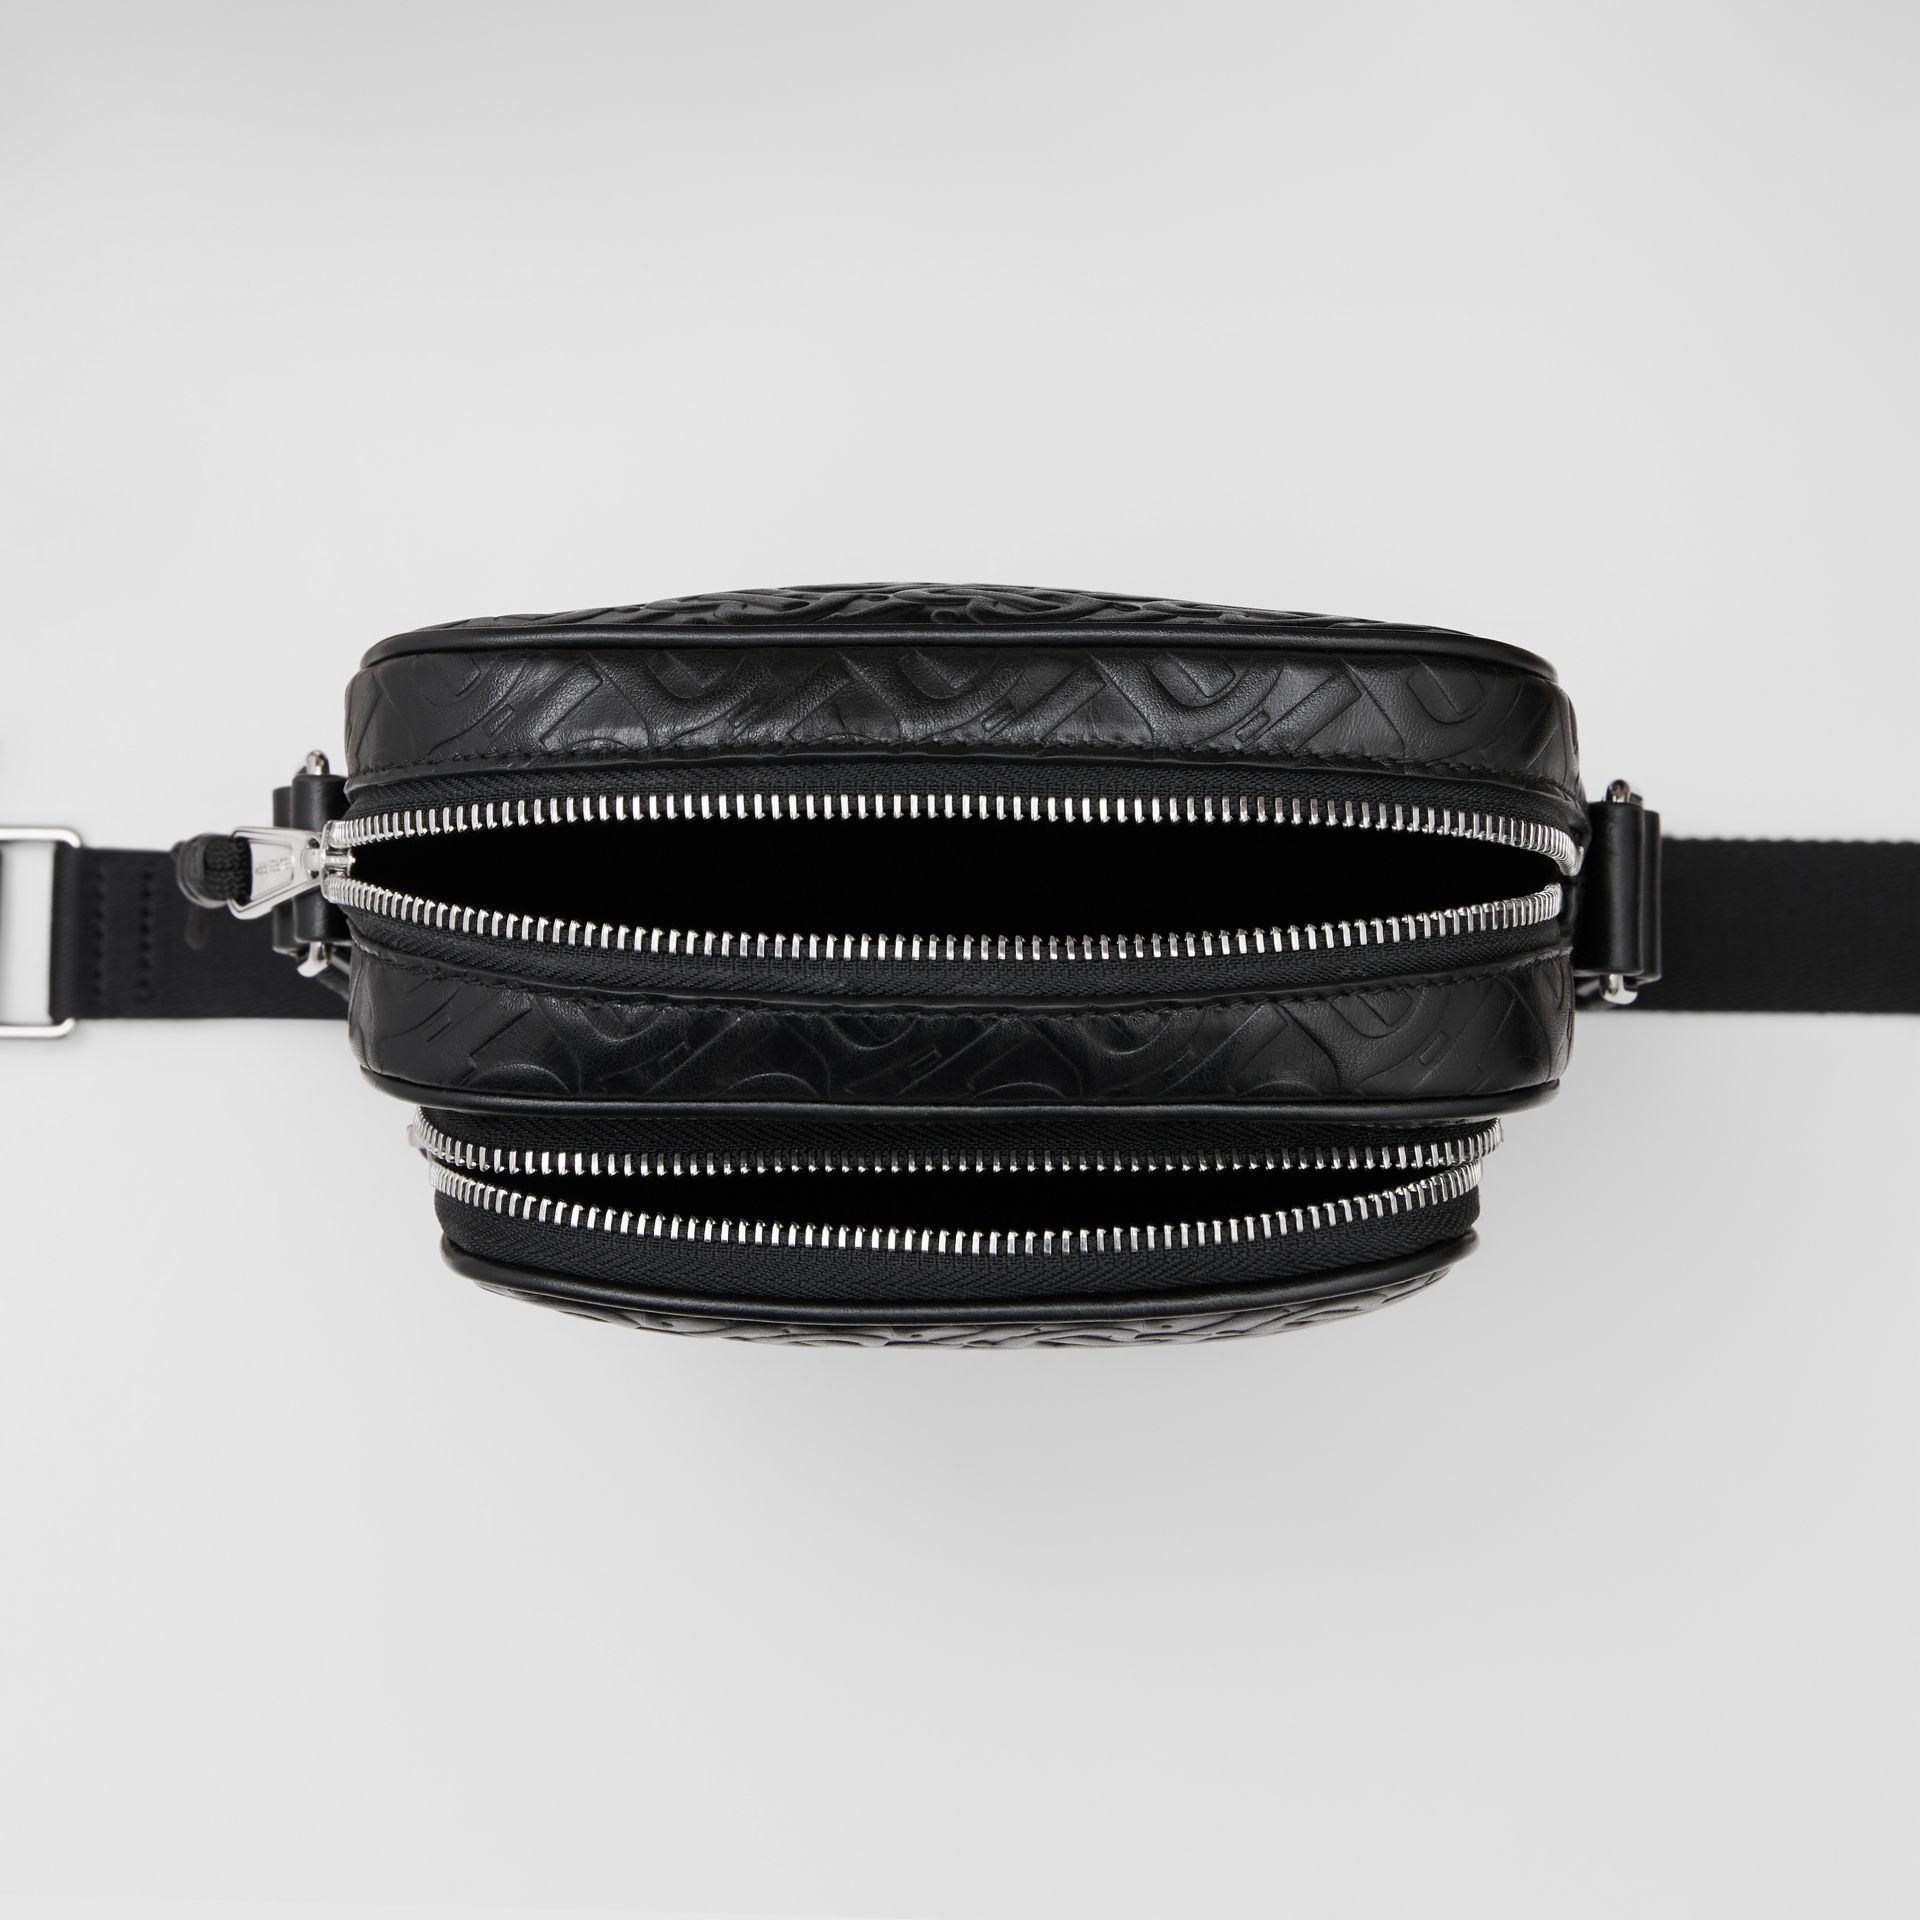 Monogram Leather Crossbody Bag in Black - Men | Burberry Canada - gallery image 5